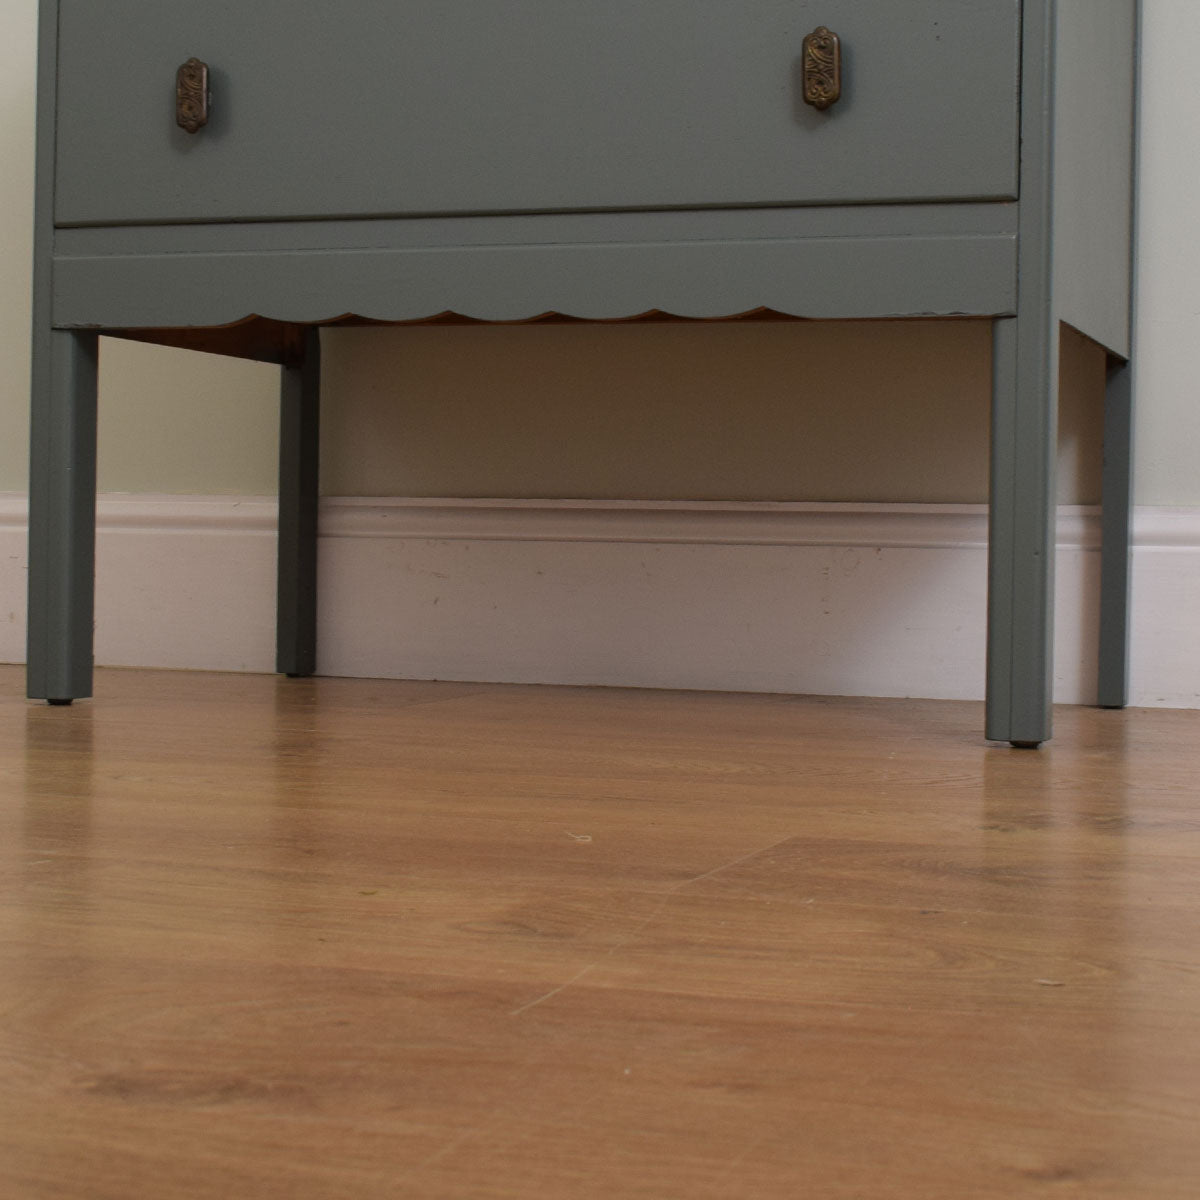 Painted Mirrored Dressing table